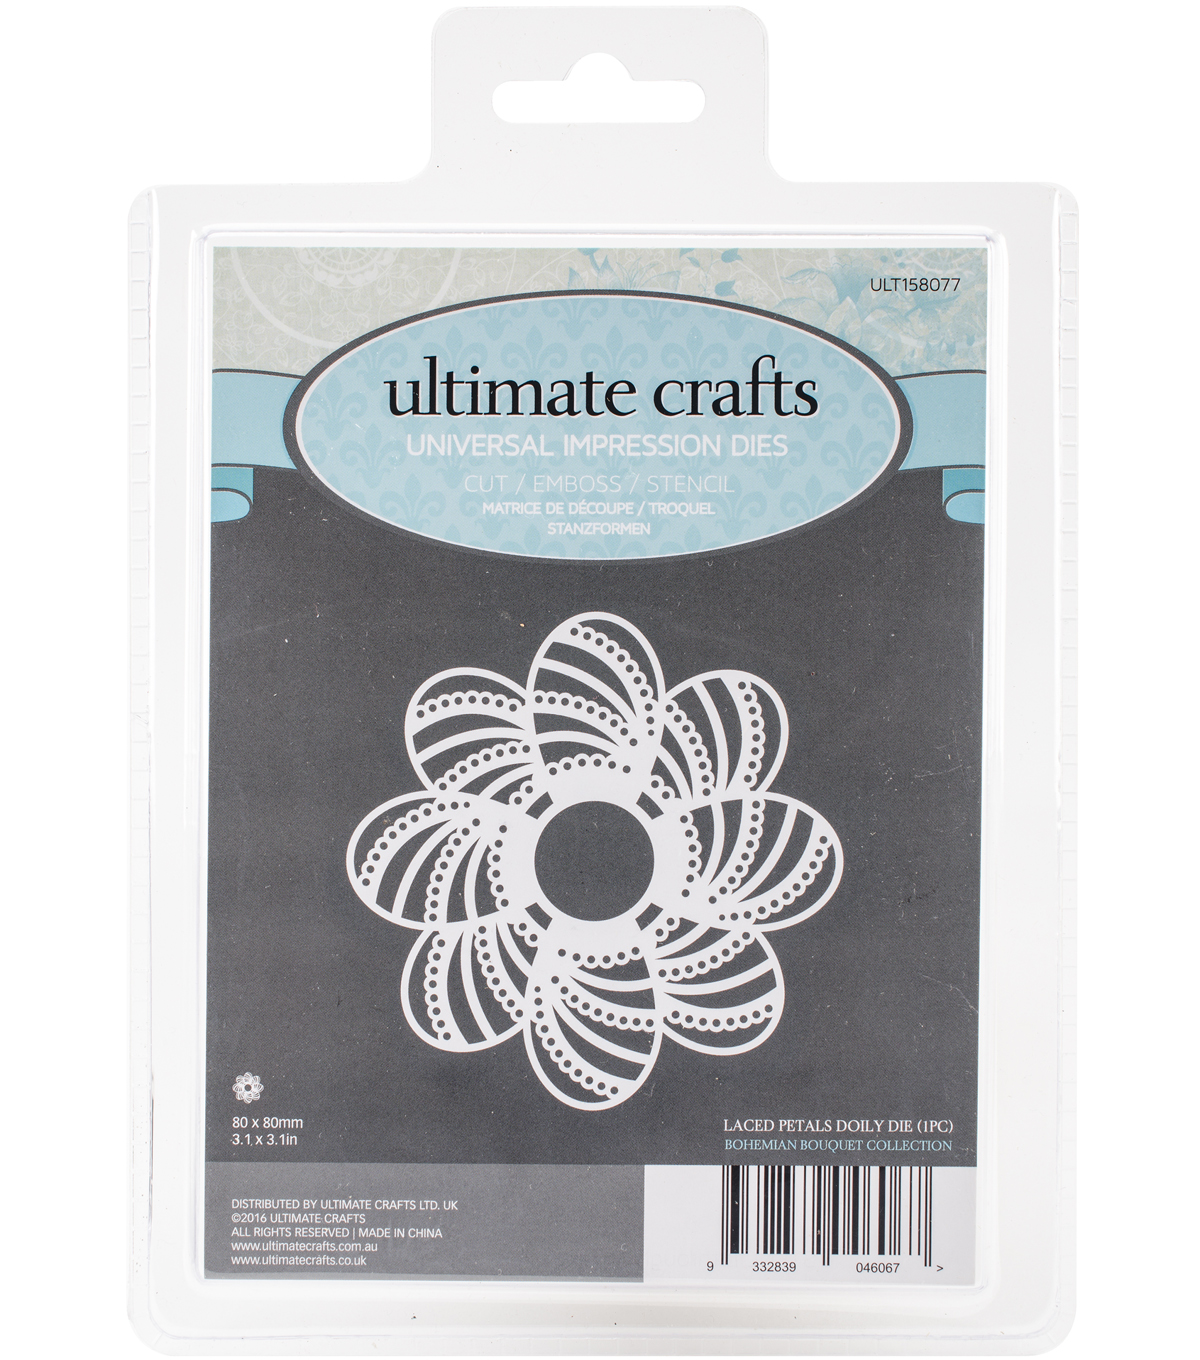 Ultimate Crafts Bohemian Bouquet 3.1\u0027\u0027x3.1\u0027\u0027 Die-Laced Petals Doily